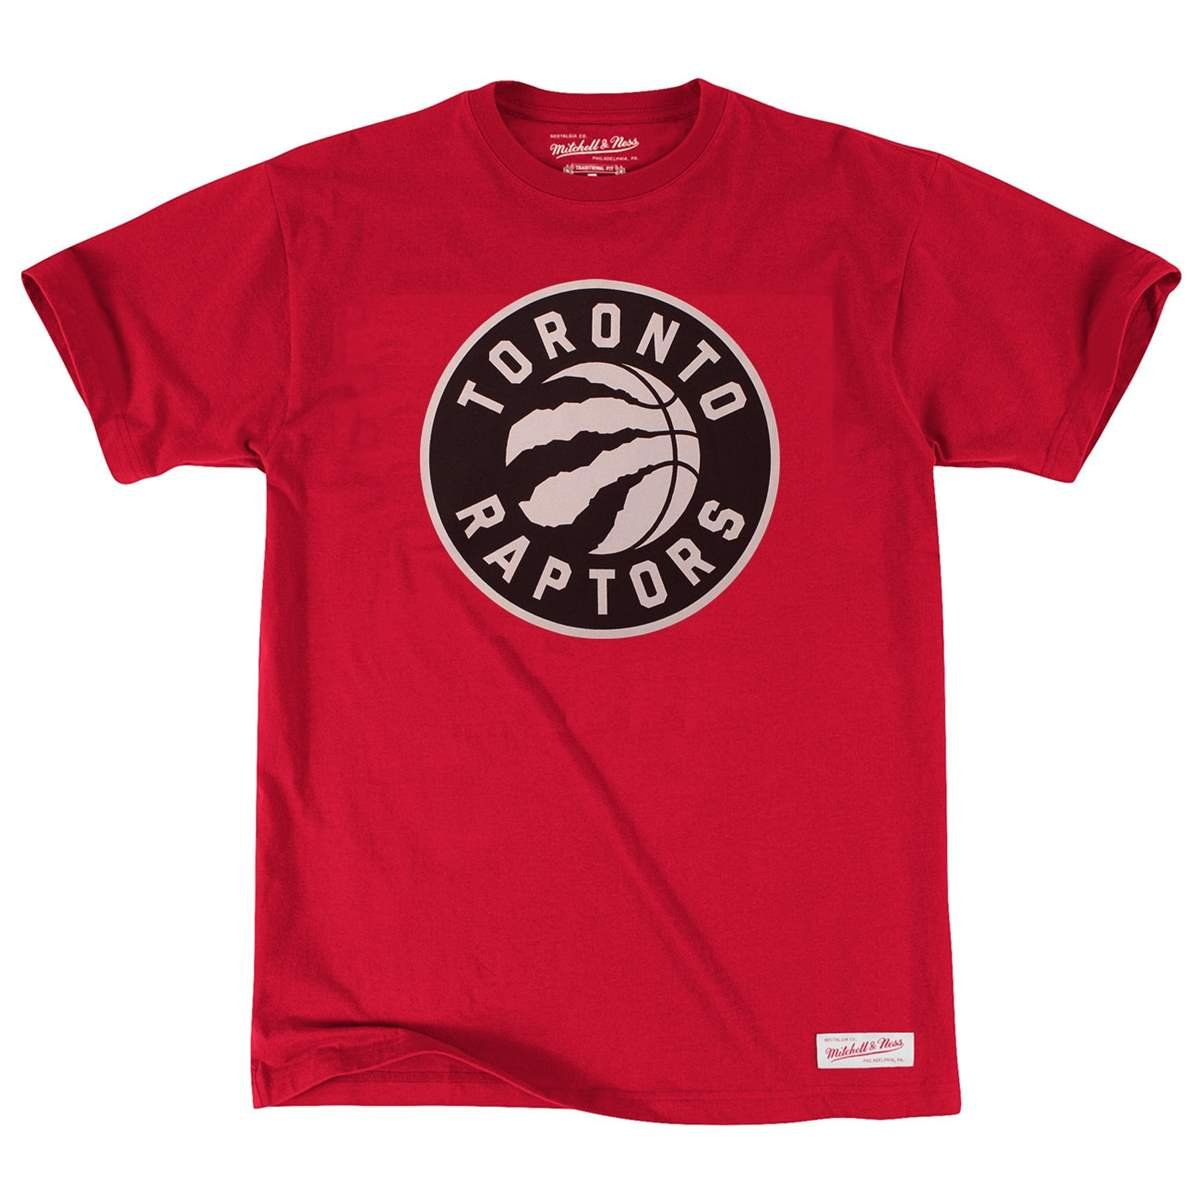 Mitchell & Ness Toronto Raptors Black & White Logo NBA Camiseta de Color Rojo: Amazon.es: Deportes y aire libre